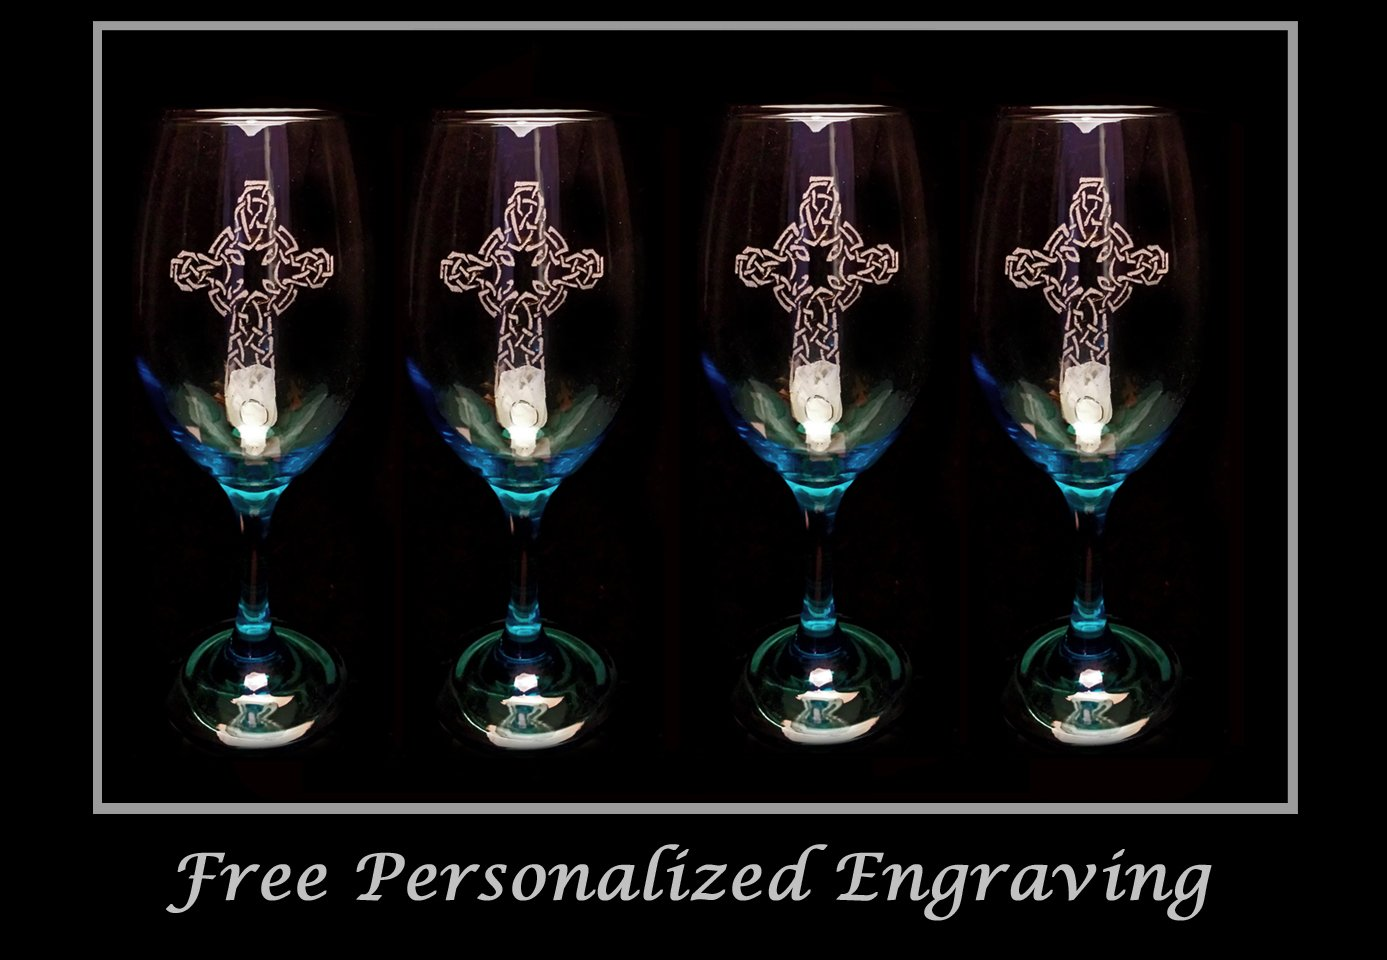 Celtic Cross Teal Wine Glass Set of 4 - Free Personalized Engraving- Christian Decor- cobalt wine glass - dark blue wine glass: by LyonCraft